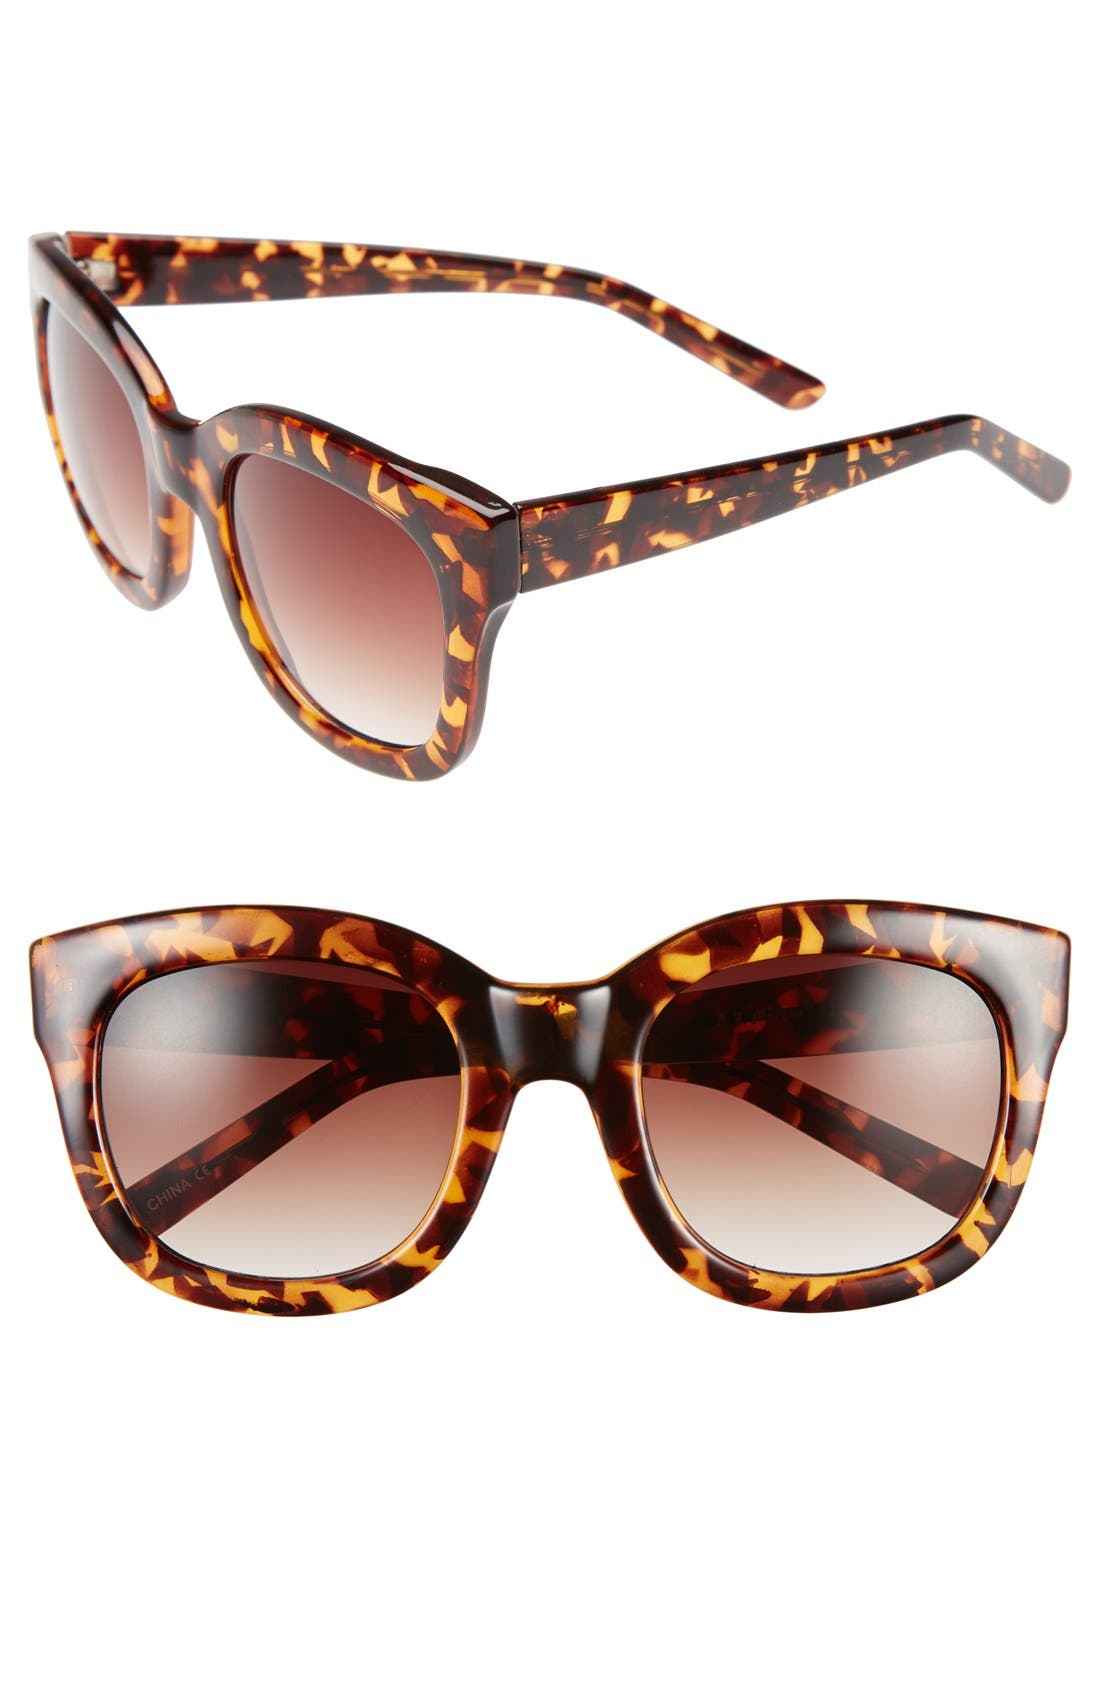 Alternate Image 1 Selected - A.J. Morgan 'Feline' 54mm Oversized Cat Eye Sunglasses